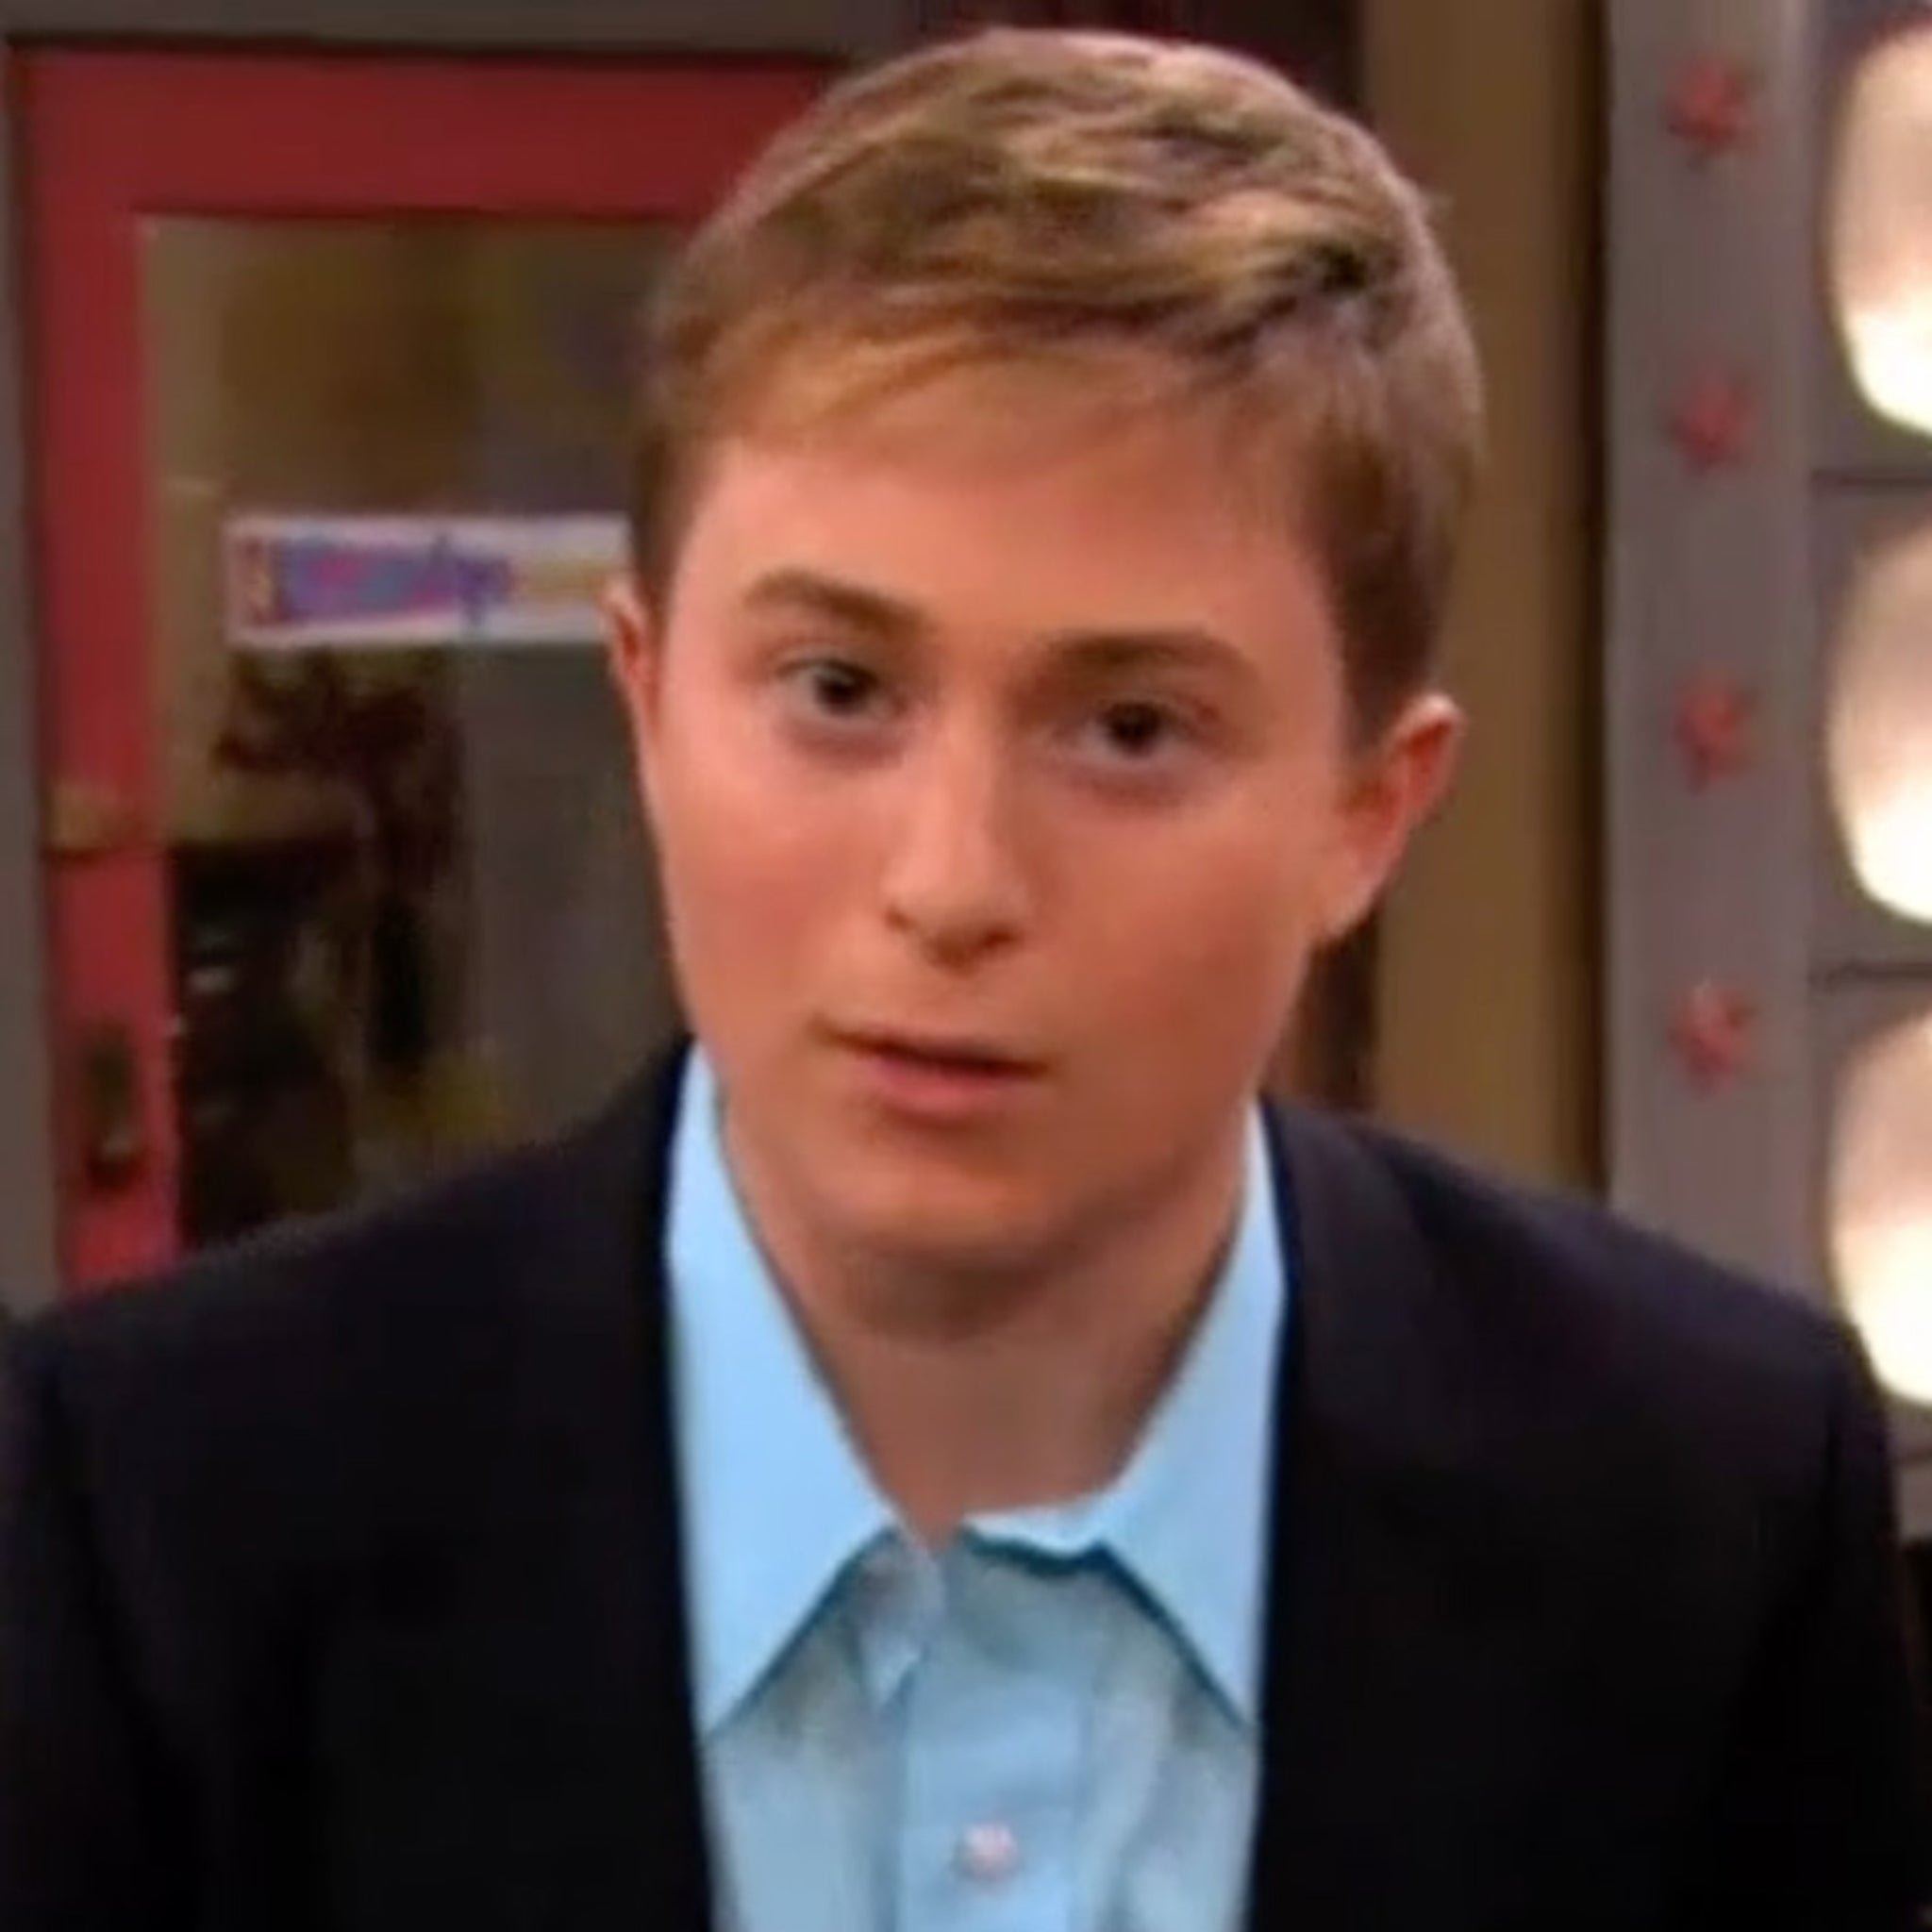 Nevel Papperman in 'iCarly' 'Memba Them?!